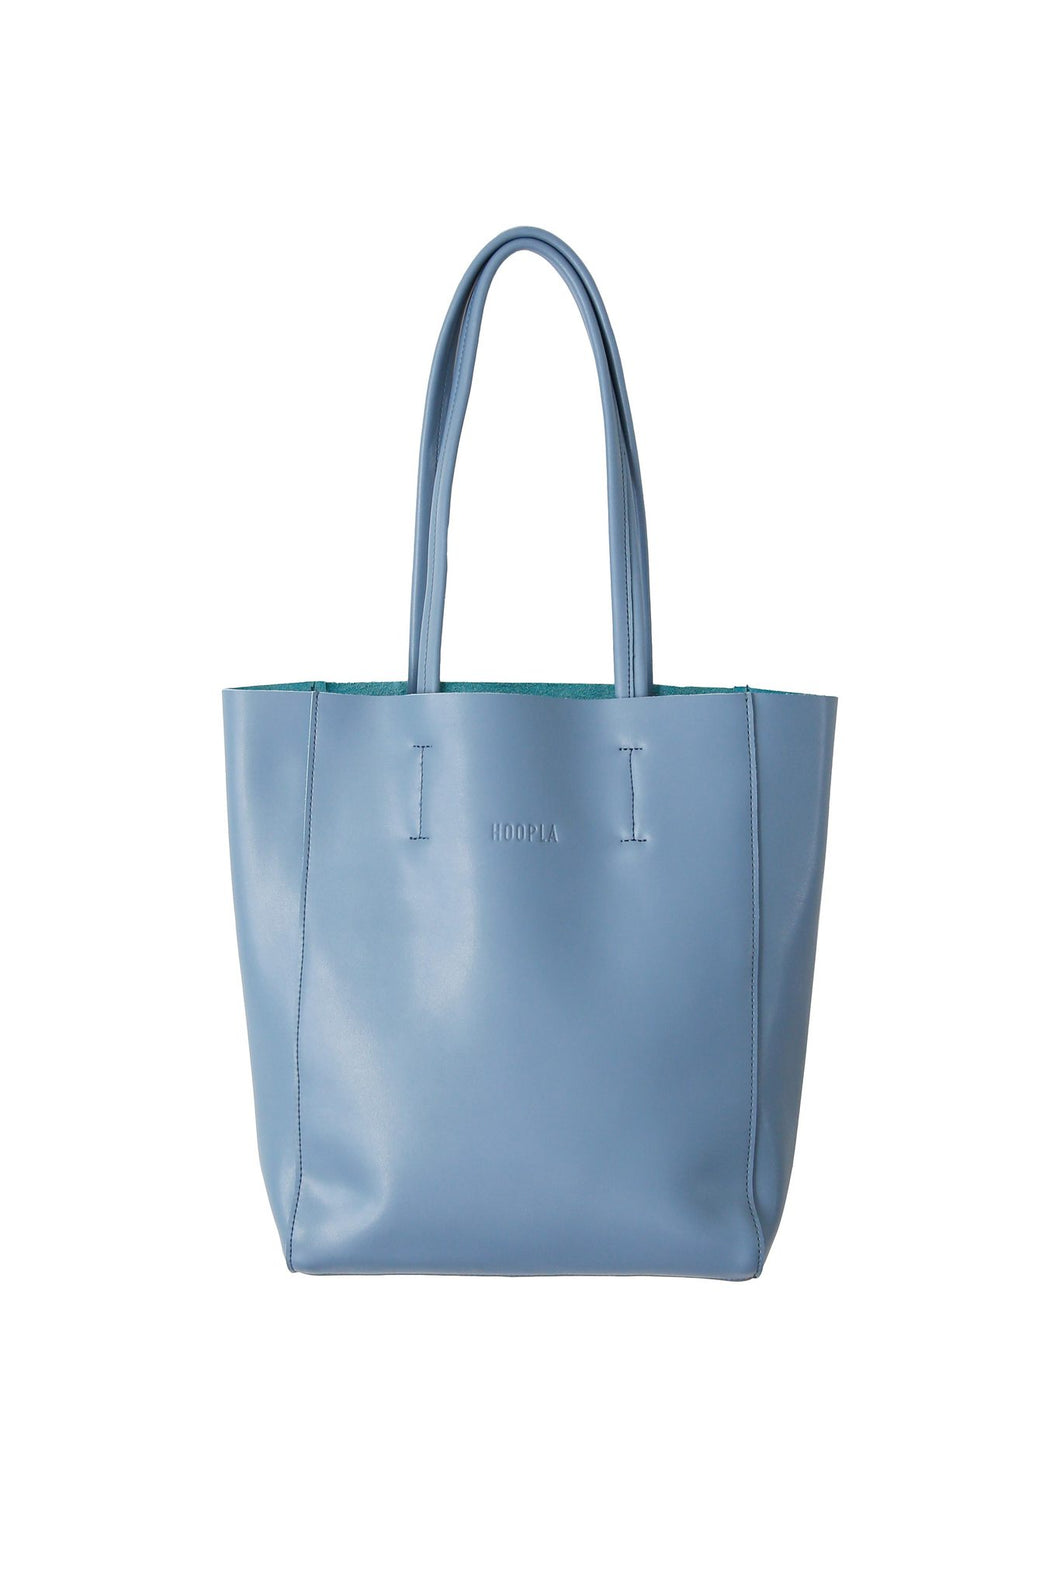 Small Tote Tote - Blue Grey